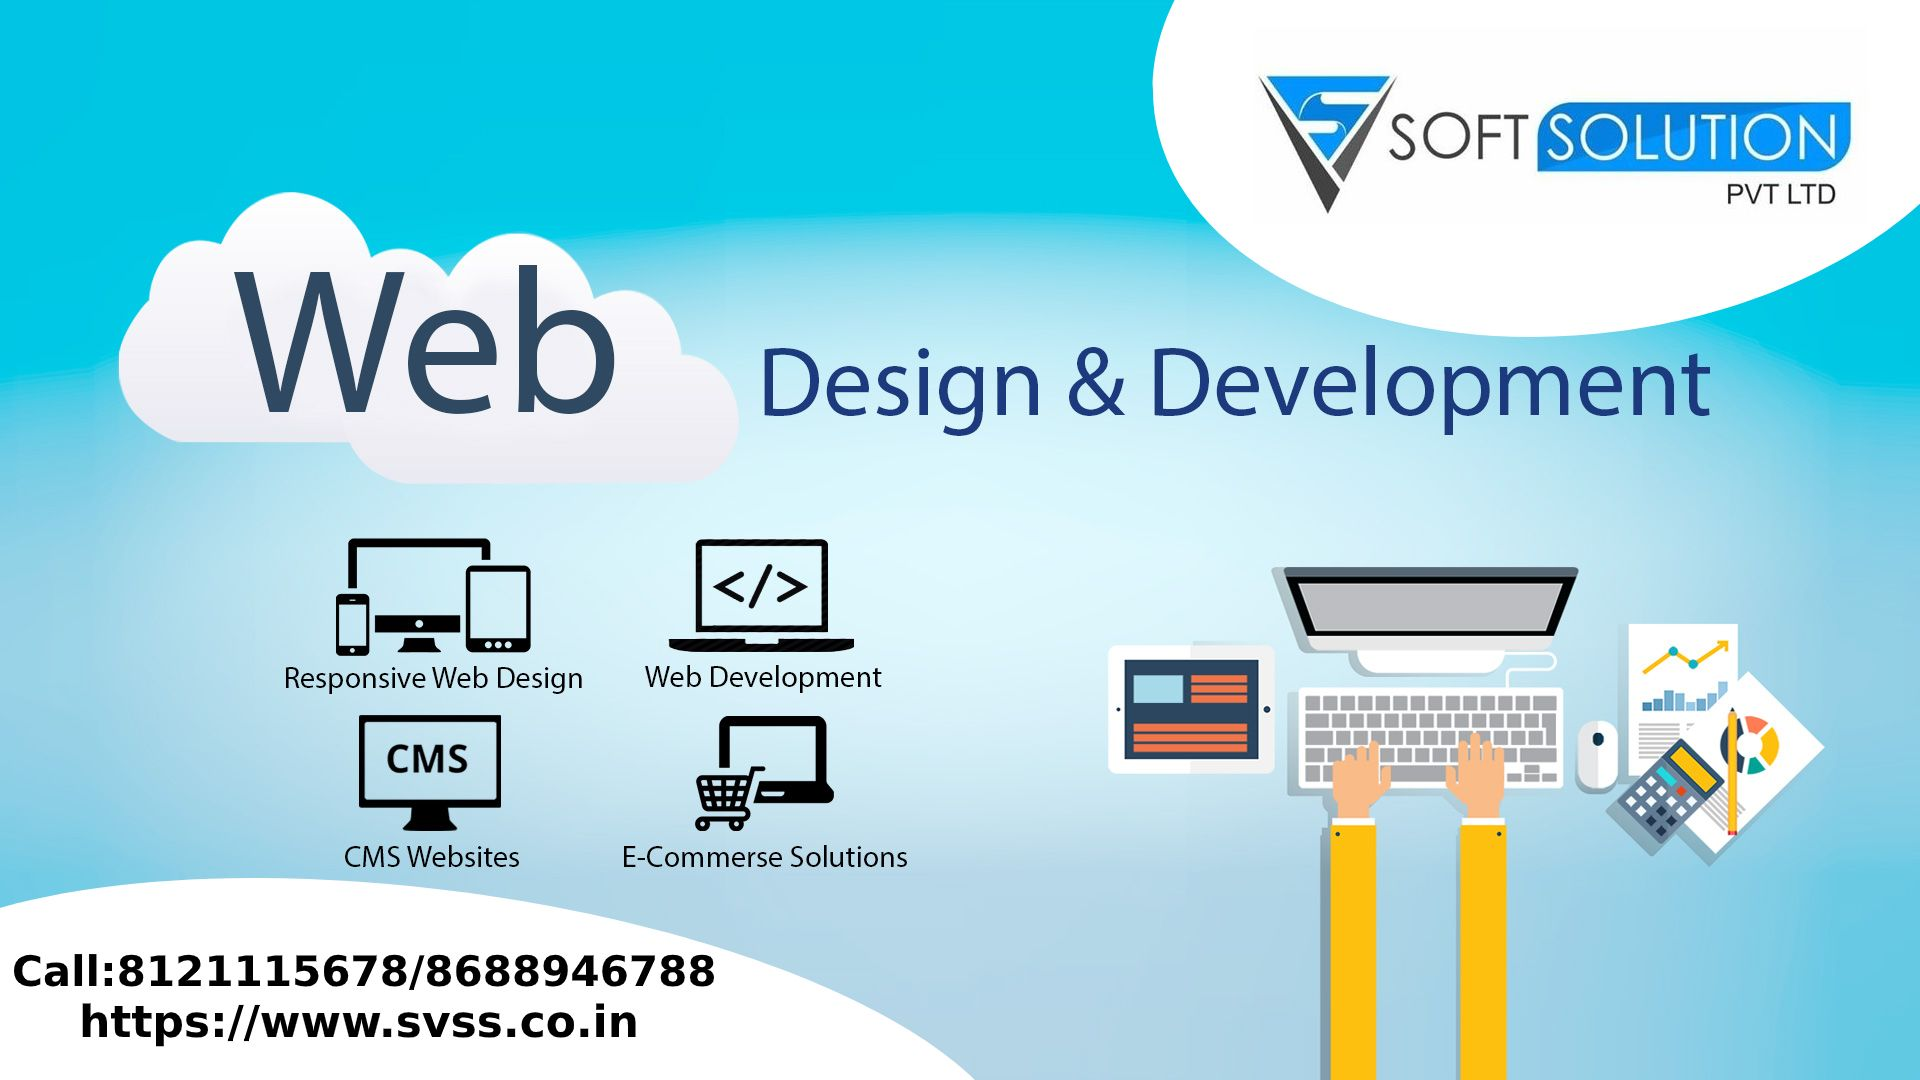 Best Website And Web Development Company In Inida In 2020 Web Development Company Web Design Web Development